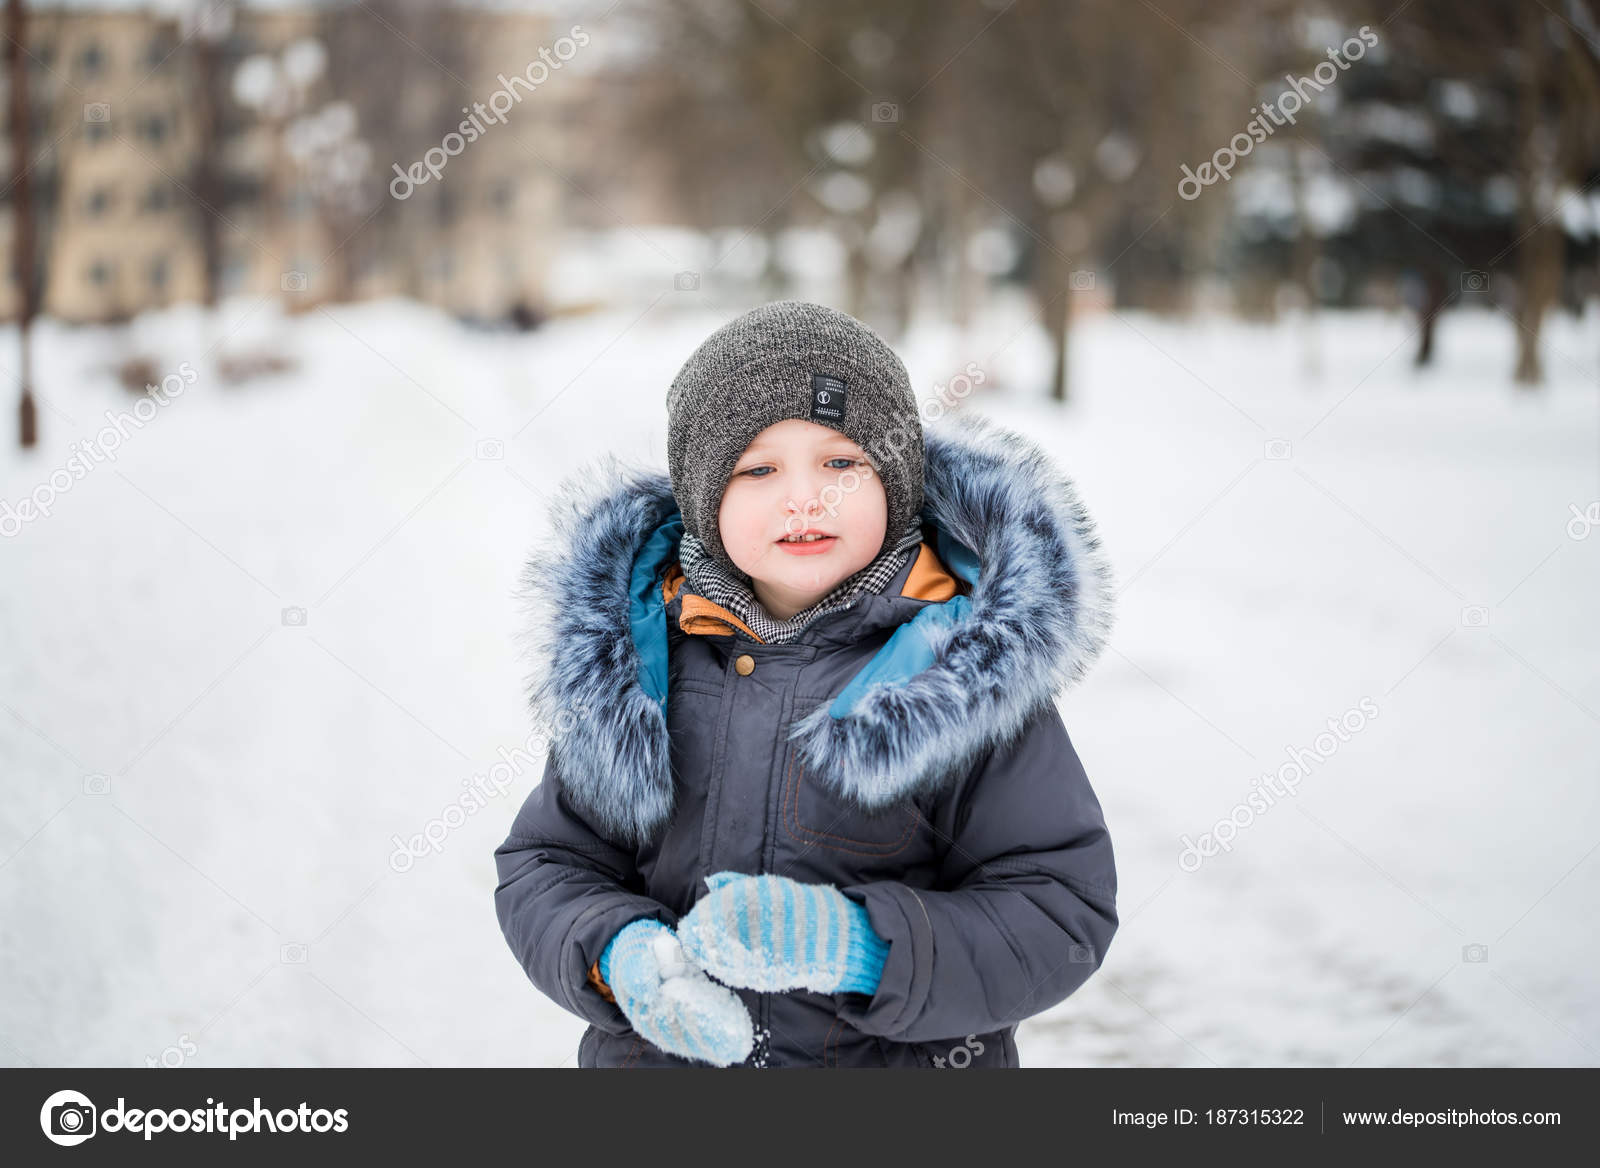 Cute little funny child in colorful winter clothes having fun with snow 5193a918b